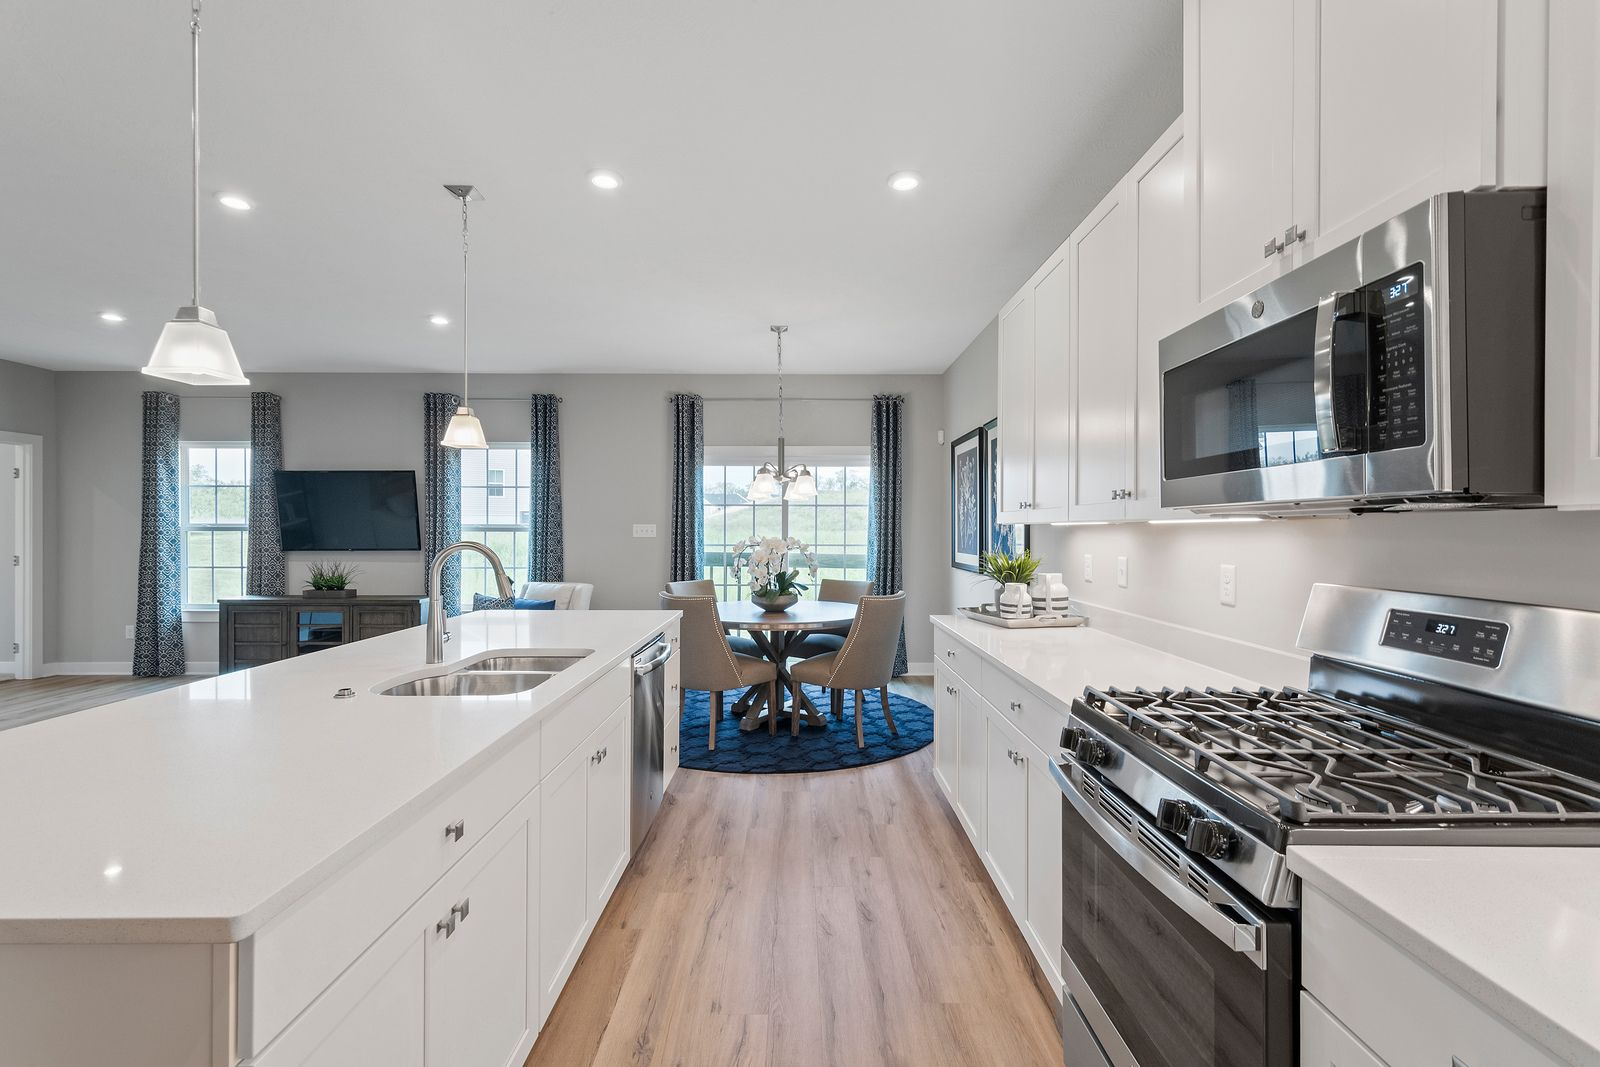 Kitchen featured in the Andover By Ryan Homes in Pittsburgh, PA